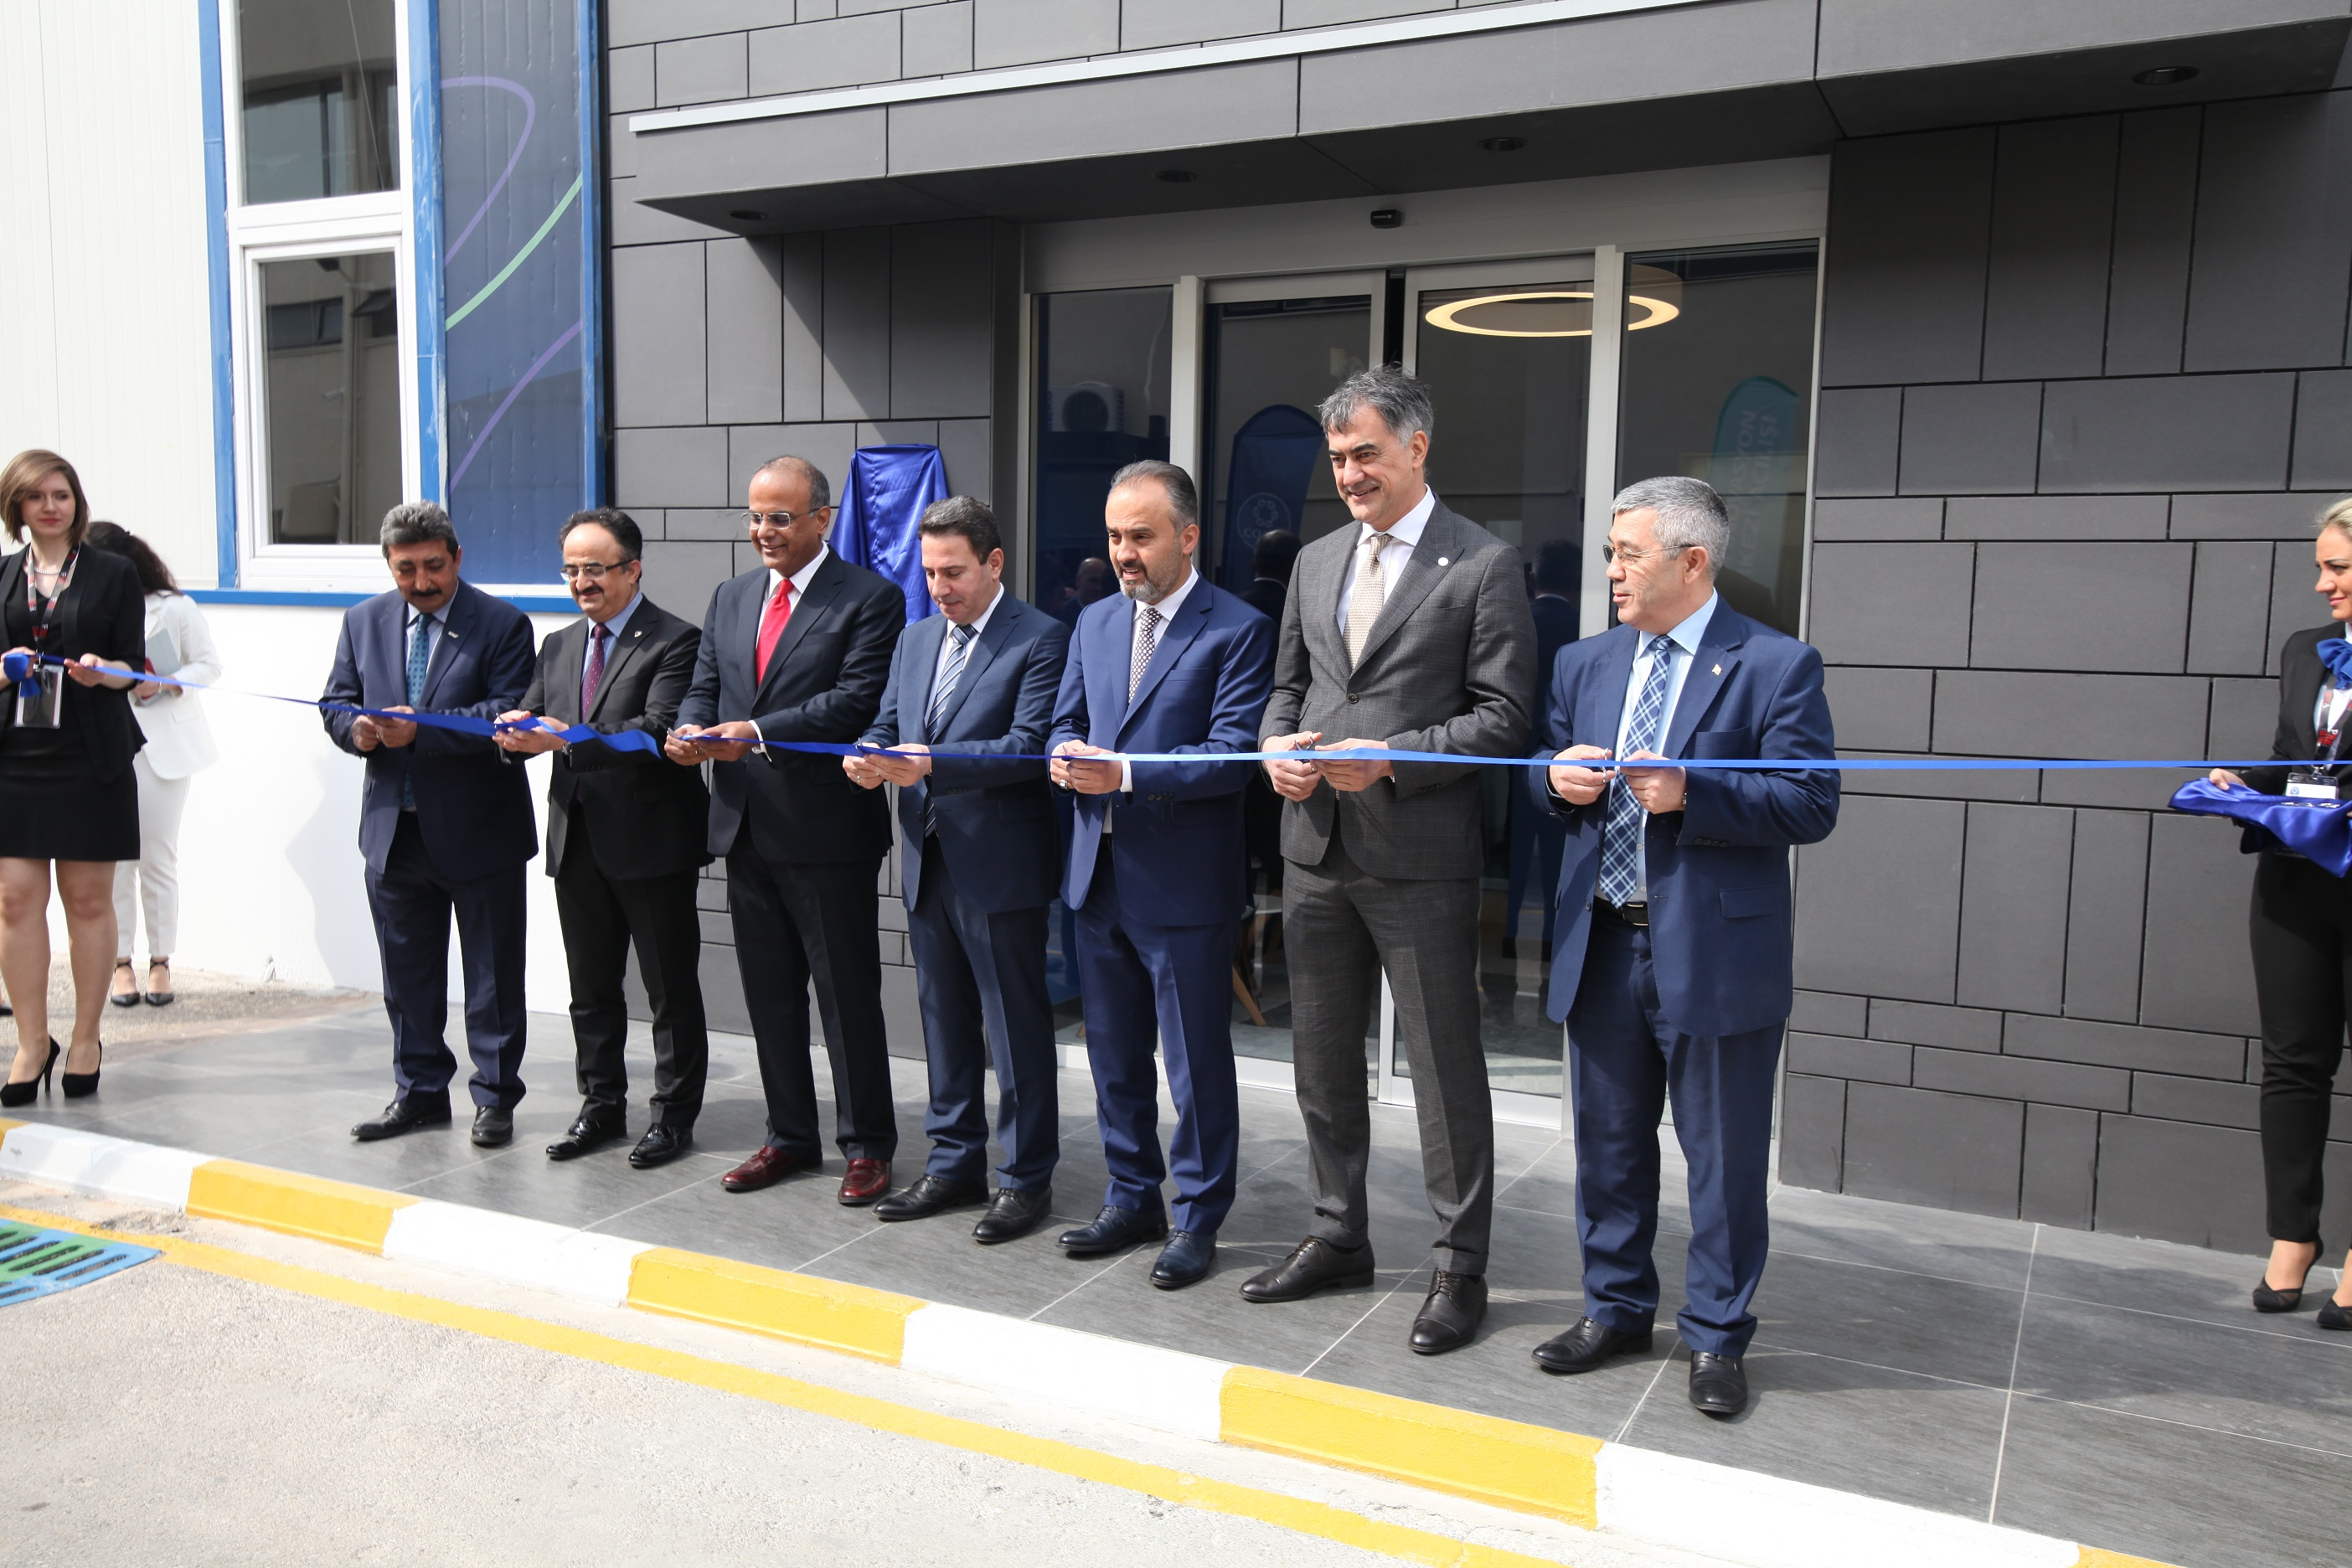 World's Leading Yarn Manufacturer Coats Celebrates Its 50th Anniversary with the Opening of the Innovation Center in Bursa